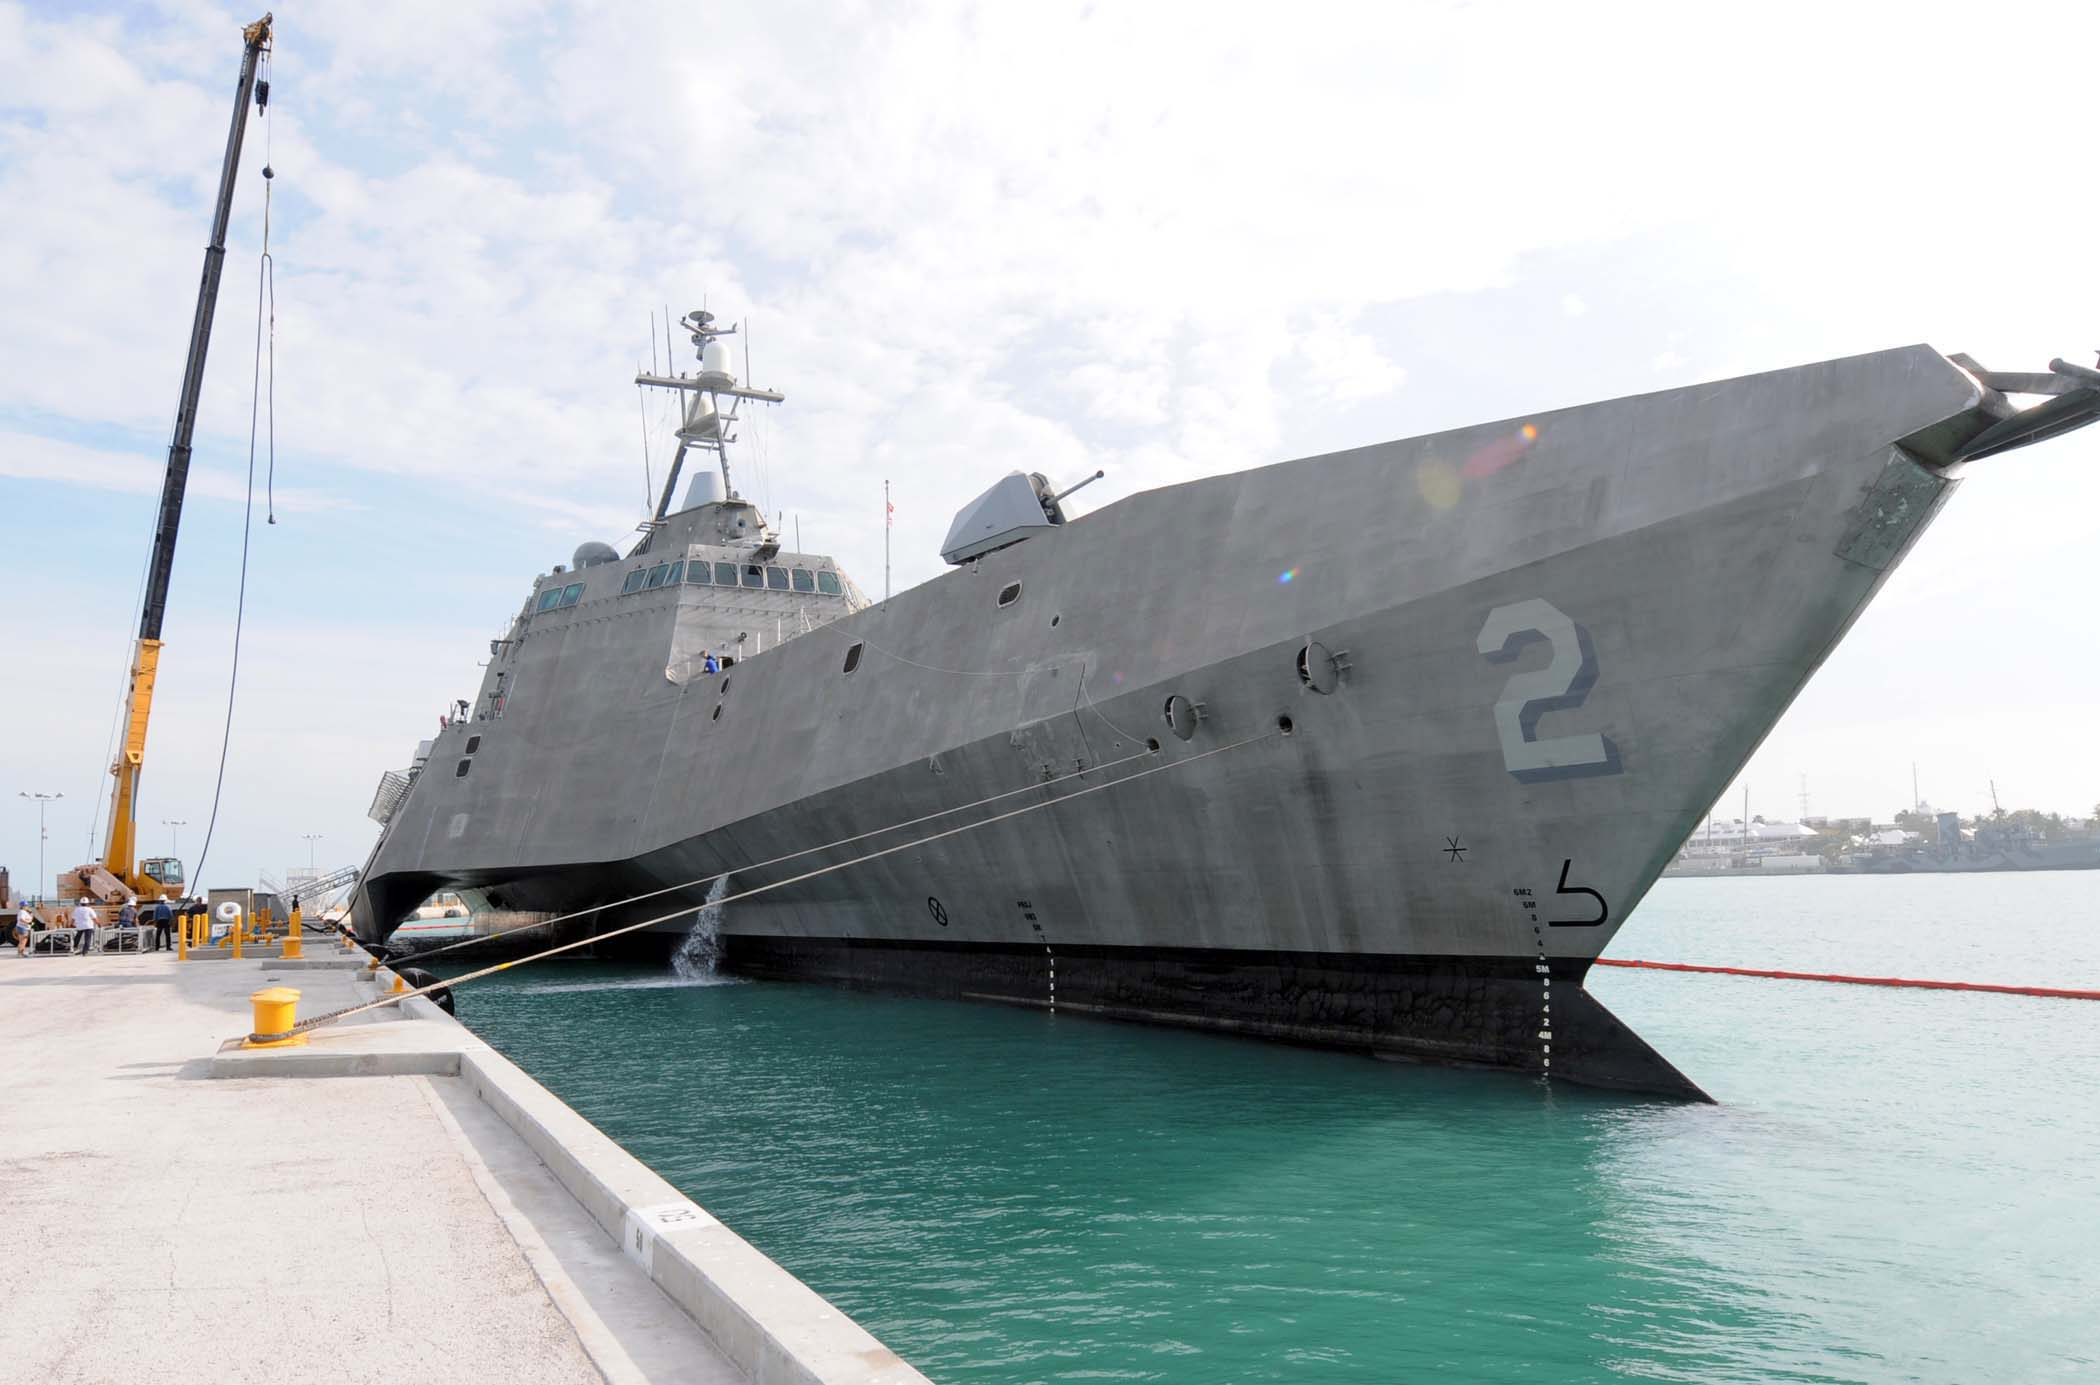 GAO: Congress Should not Authorize Navy Ship Award Until All Information Available